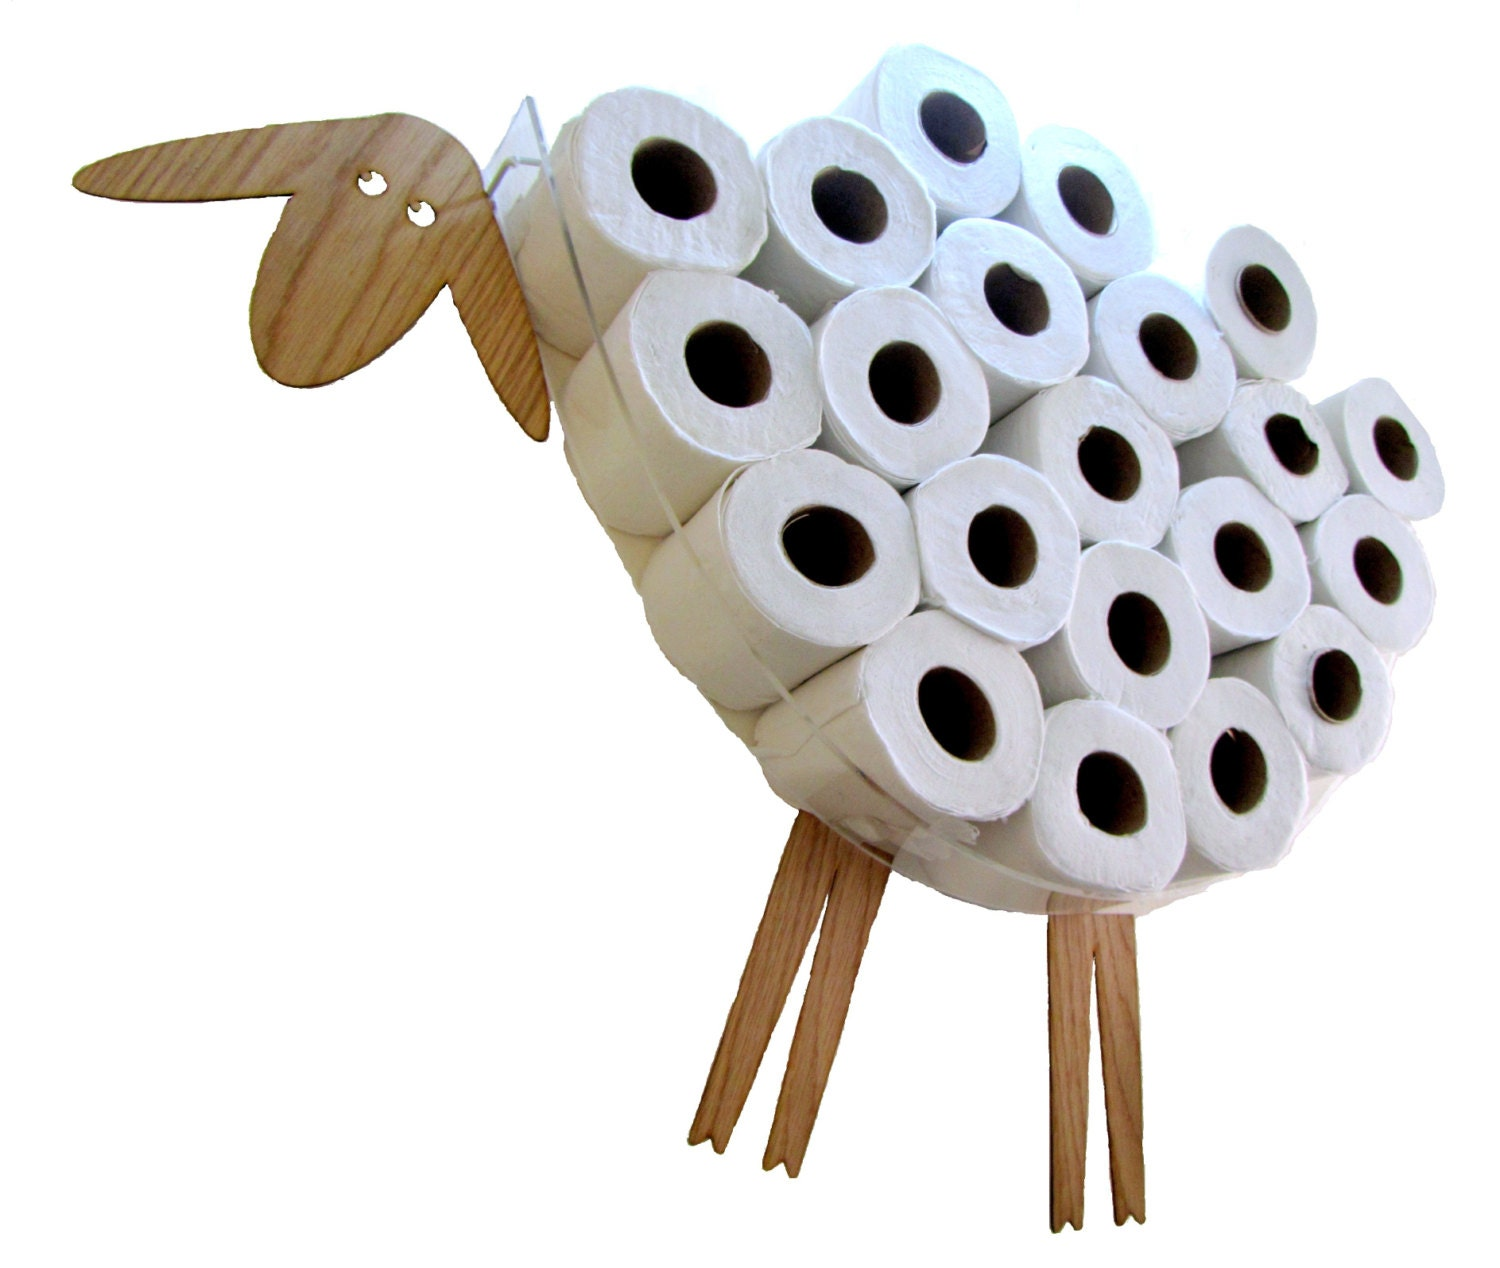 Sheep shelf a wall shelf for storing toilet paper rolls - Derouleur papier wc original ...